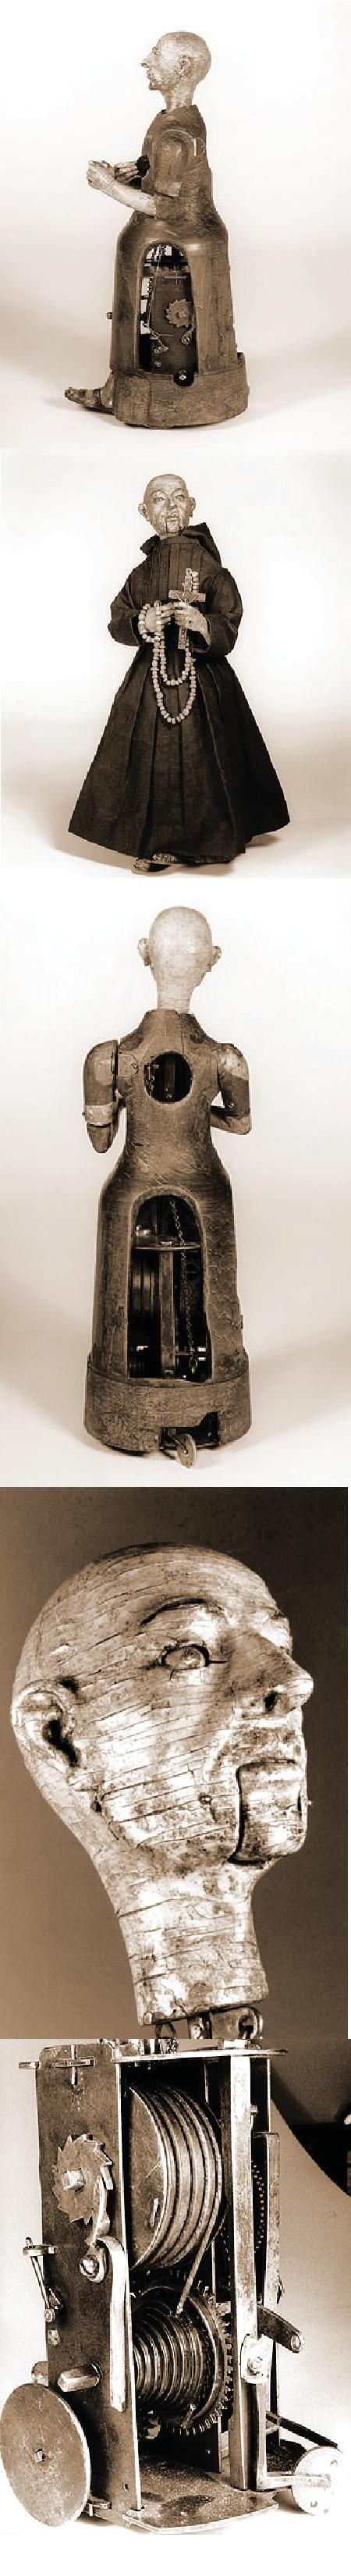 """""""An automaton of a monk, 15 inches in height. Driven by a key-wound spring, the monk walks in a square, striking his chest with his right arm, raising and lowering a small wooden cross and rosary in his left hand, turning and nodding his head, rolling his eyes, and mouthing silent obsequies. From time to time, he brings the cross to his lips and kisses it. After over 400 years, he remains in good working order."""